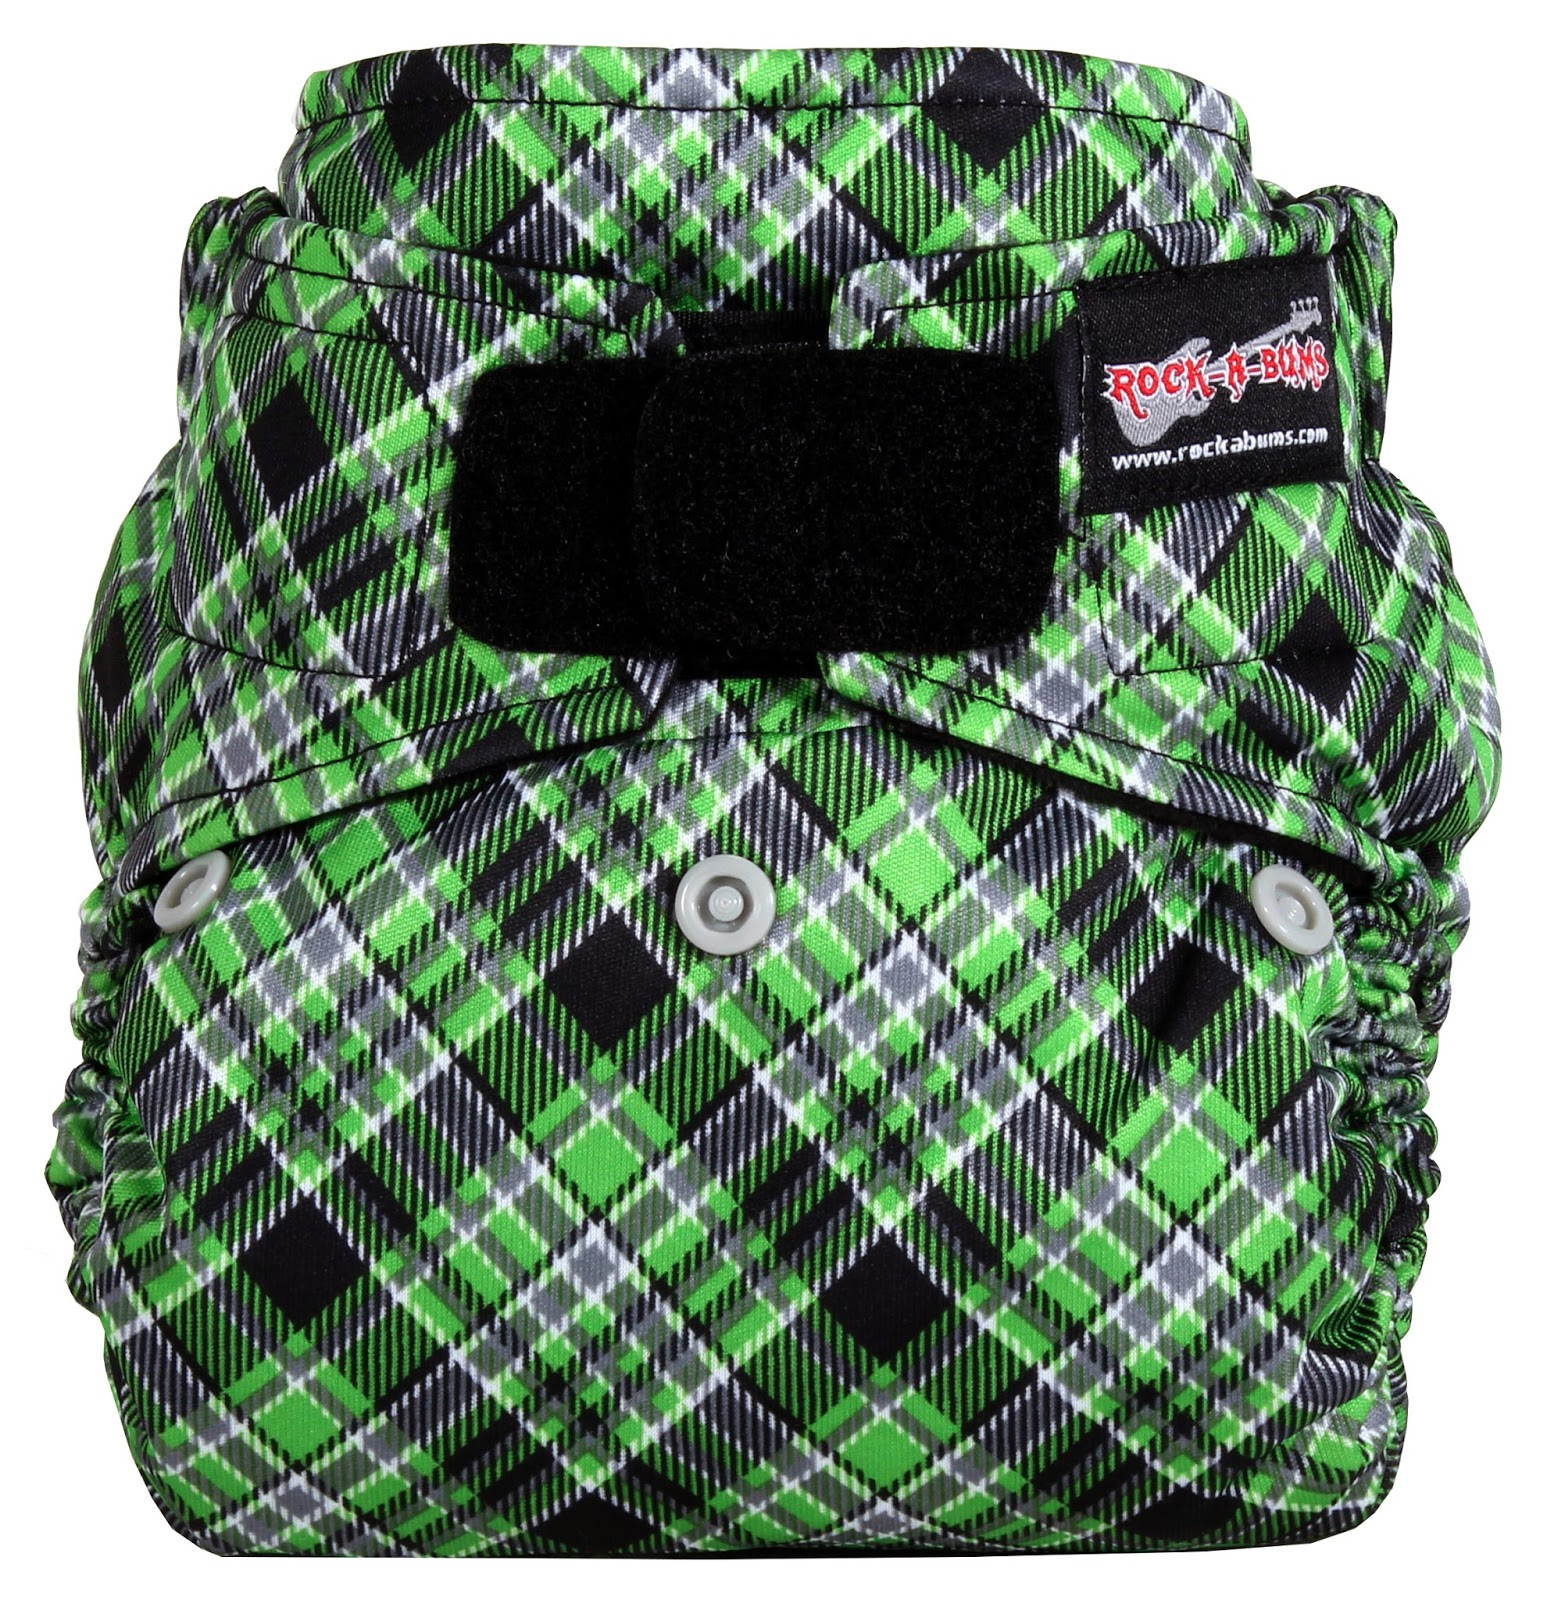 http://www.rockabums.com/shop/punk-plaid-green-2-0-includes-2-reusable-inserts/